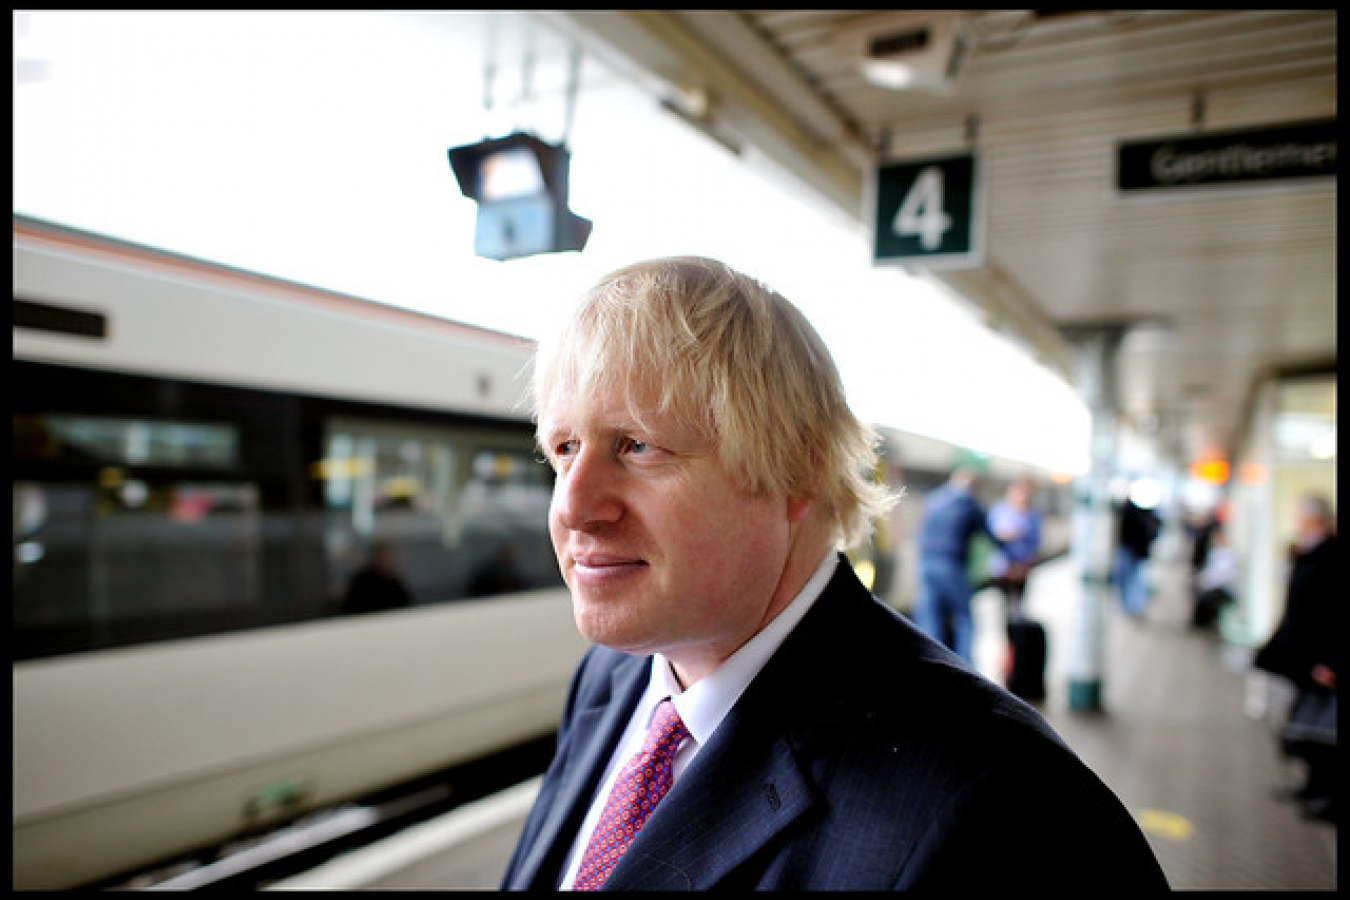 Boris Johnson likely to be next Prime Minister